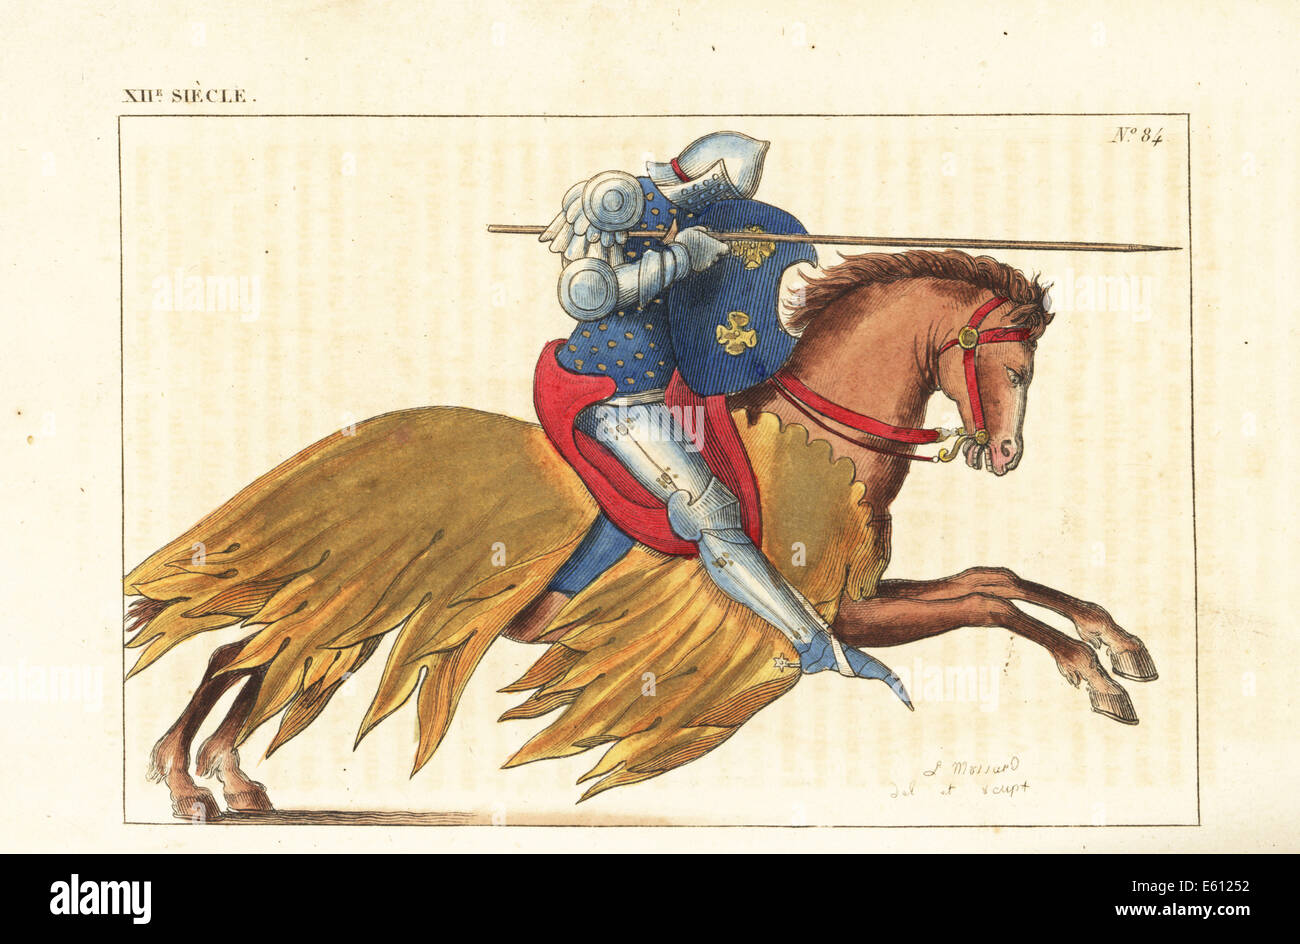 French cavalry charging with lance, 12th century. - Stock Image